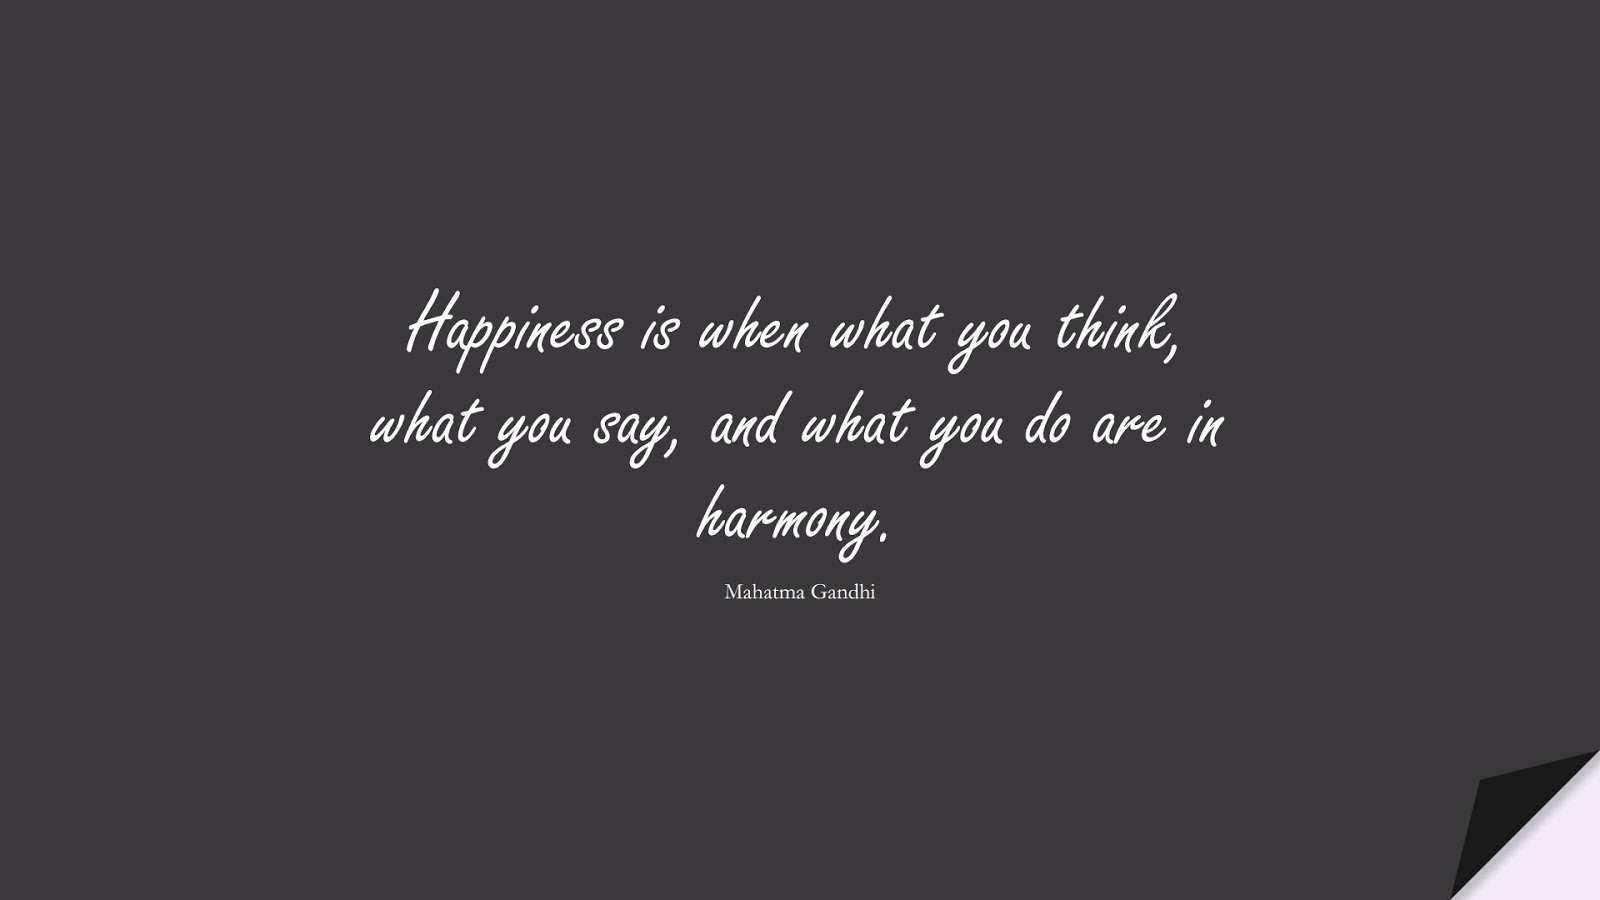 Happiness is when what you think, what you say, and what you do are in harmony. (Mahatma Gandhi);  #SuccessQuotes